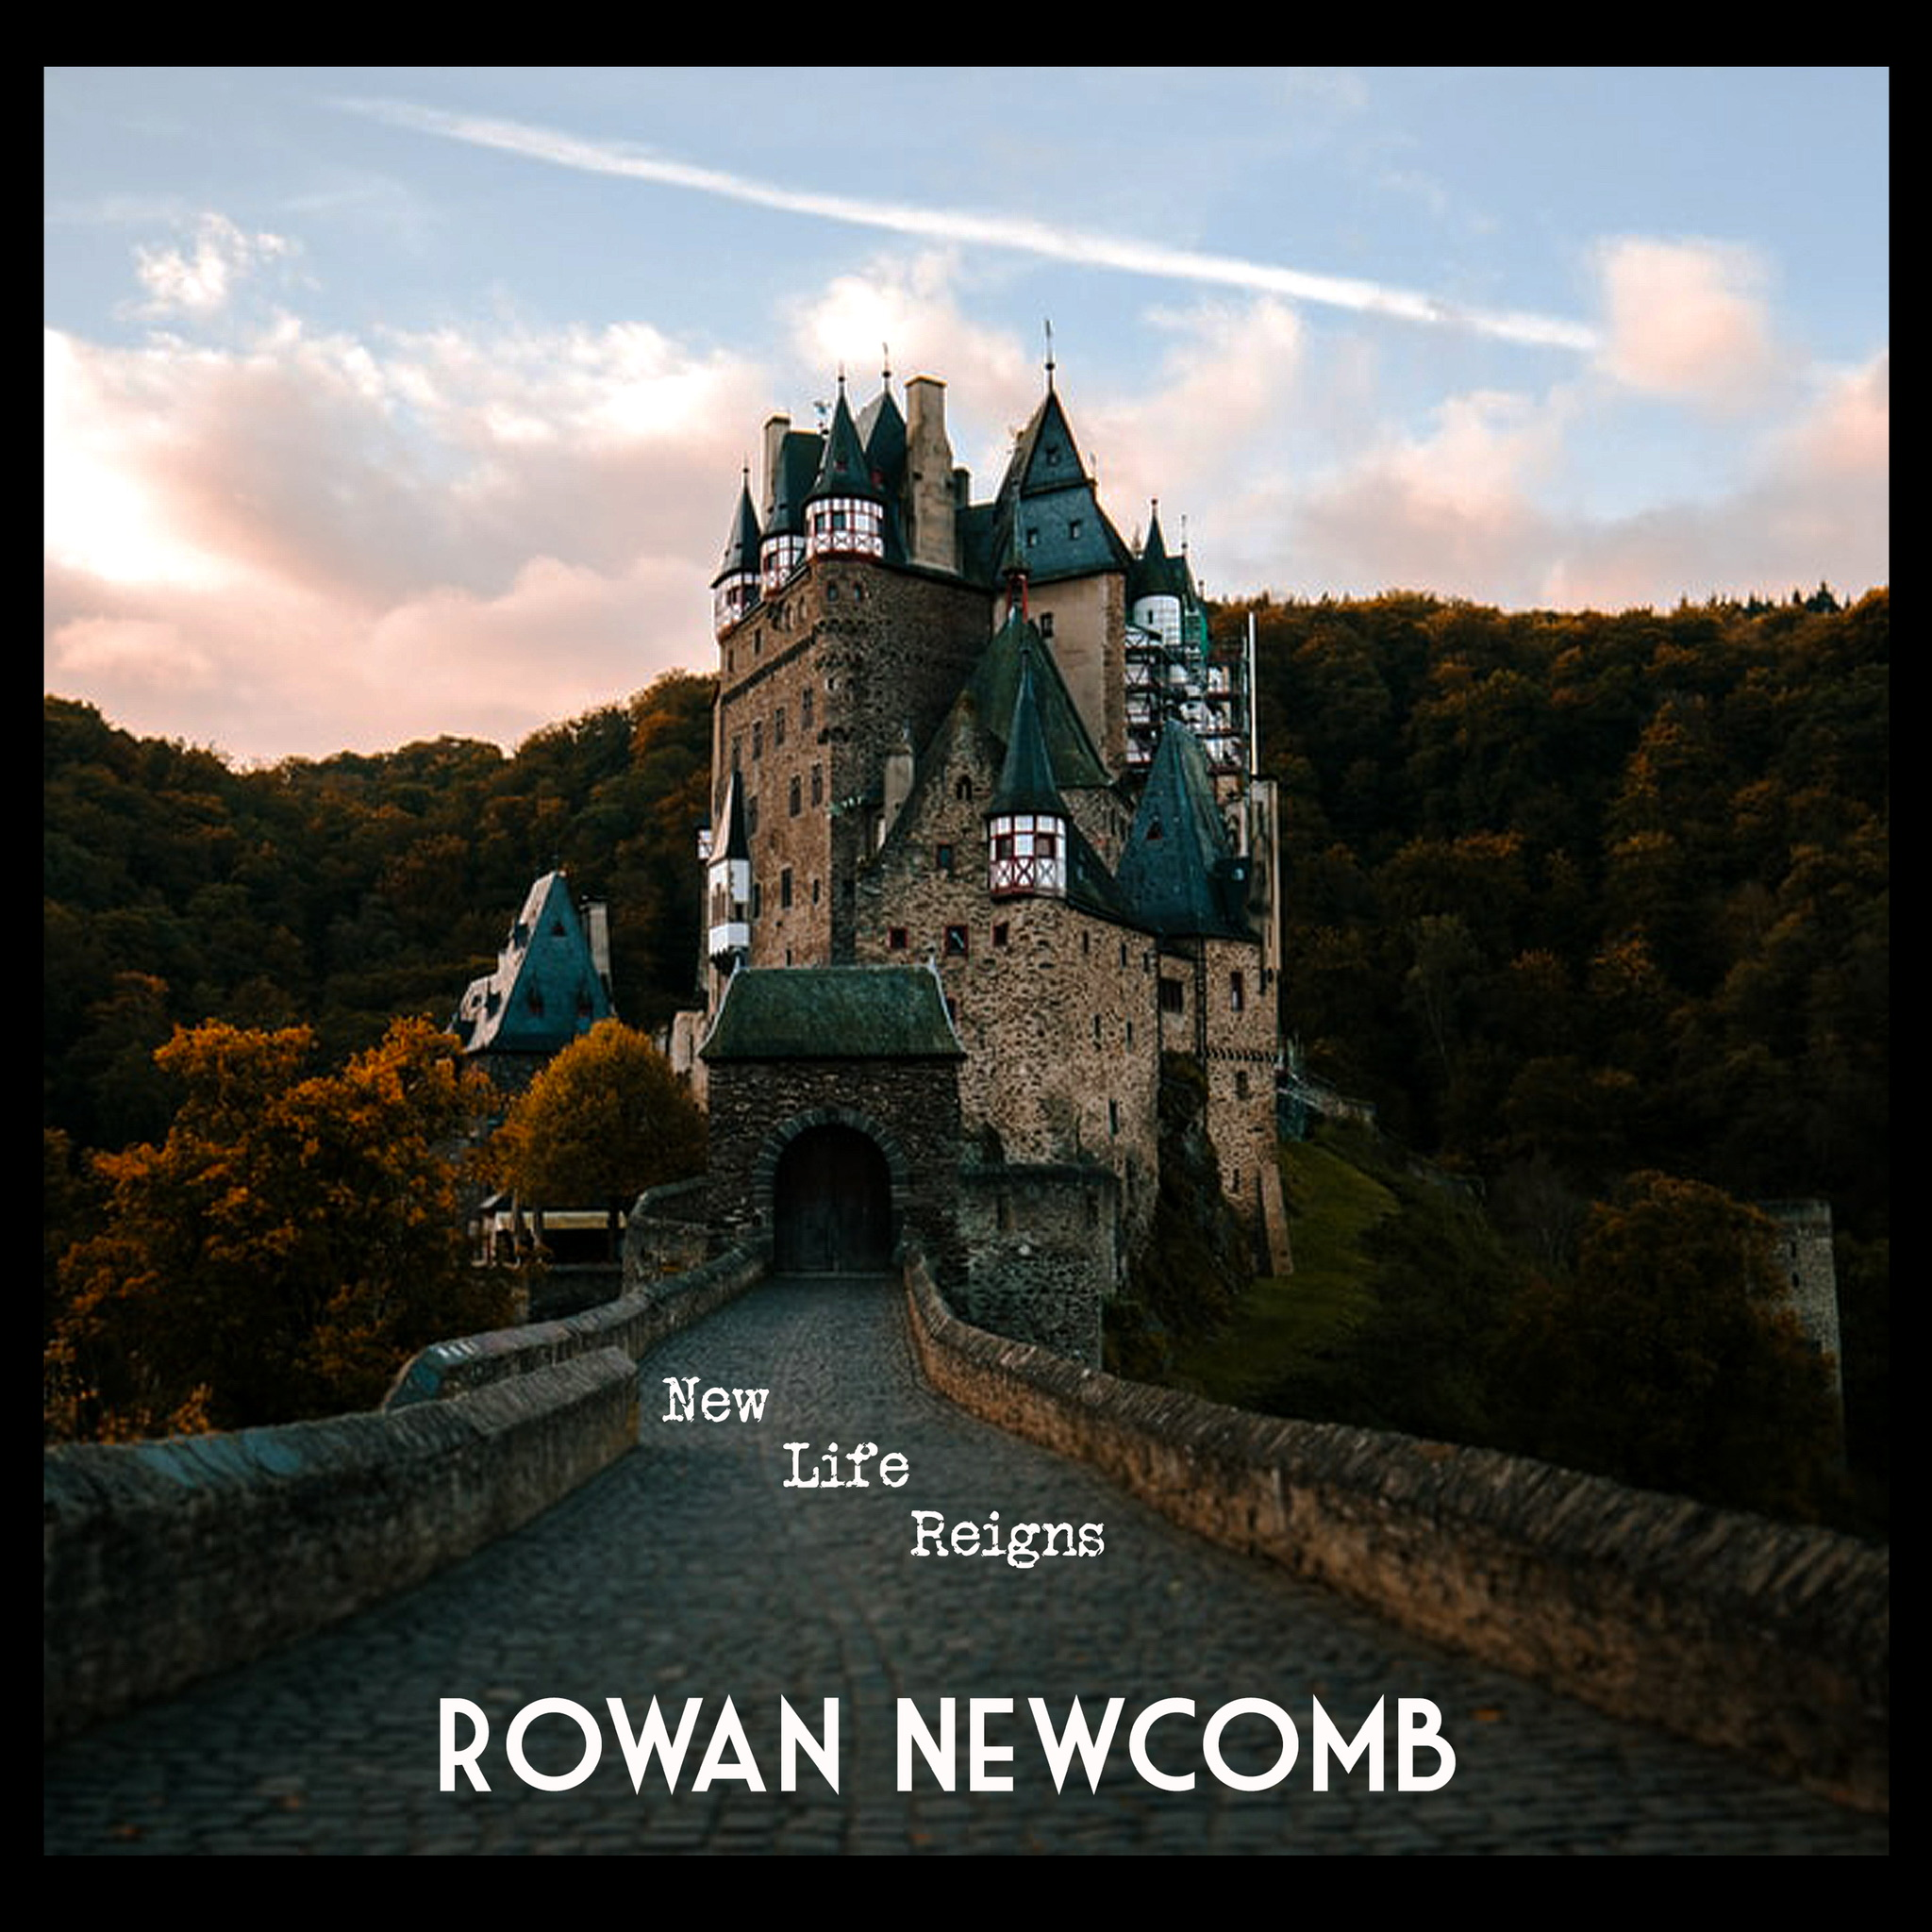 Igniting Positivity with Enriching Alternative and Christian Music: Rising Artist Rowan Newcomb Unveils New Album